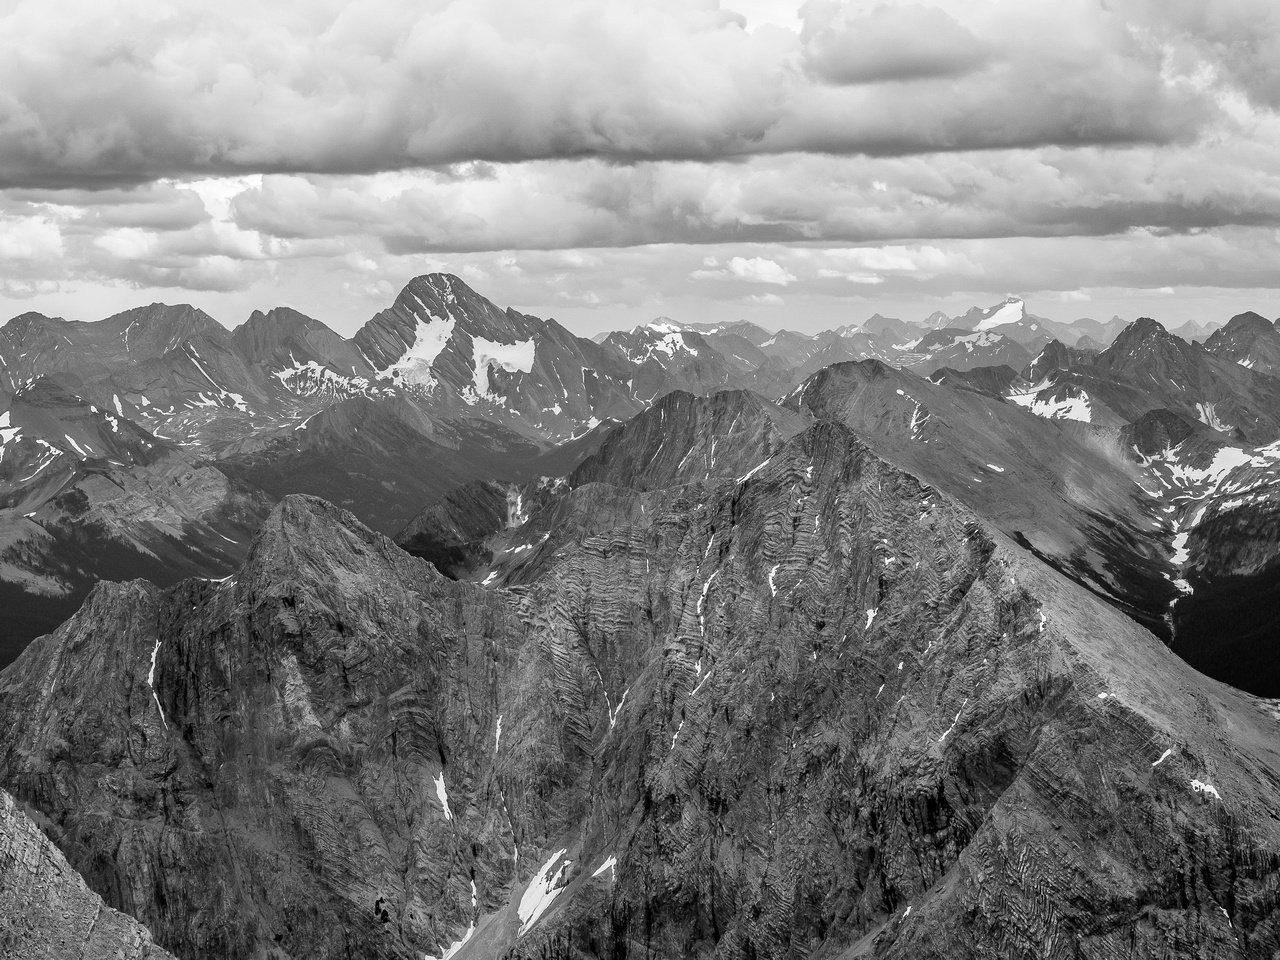 Looking over Mount Currie towards Sir Douglas and Joffre at distant right.